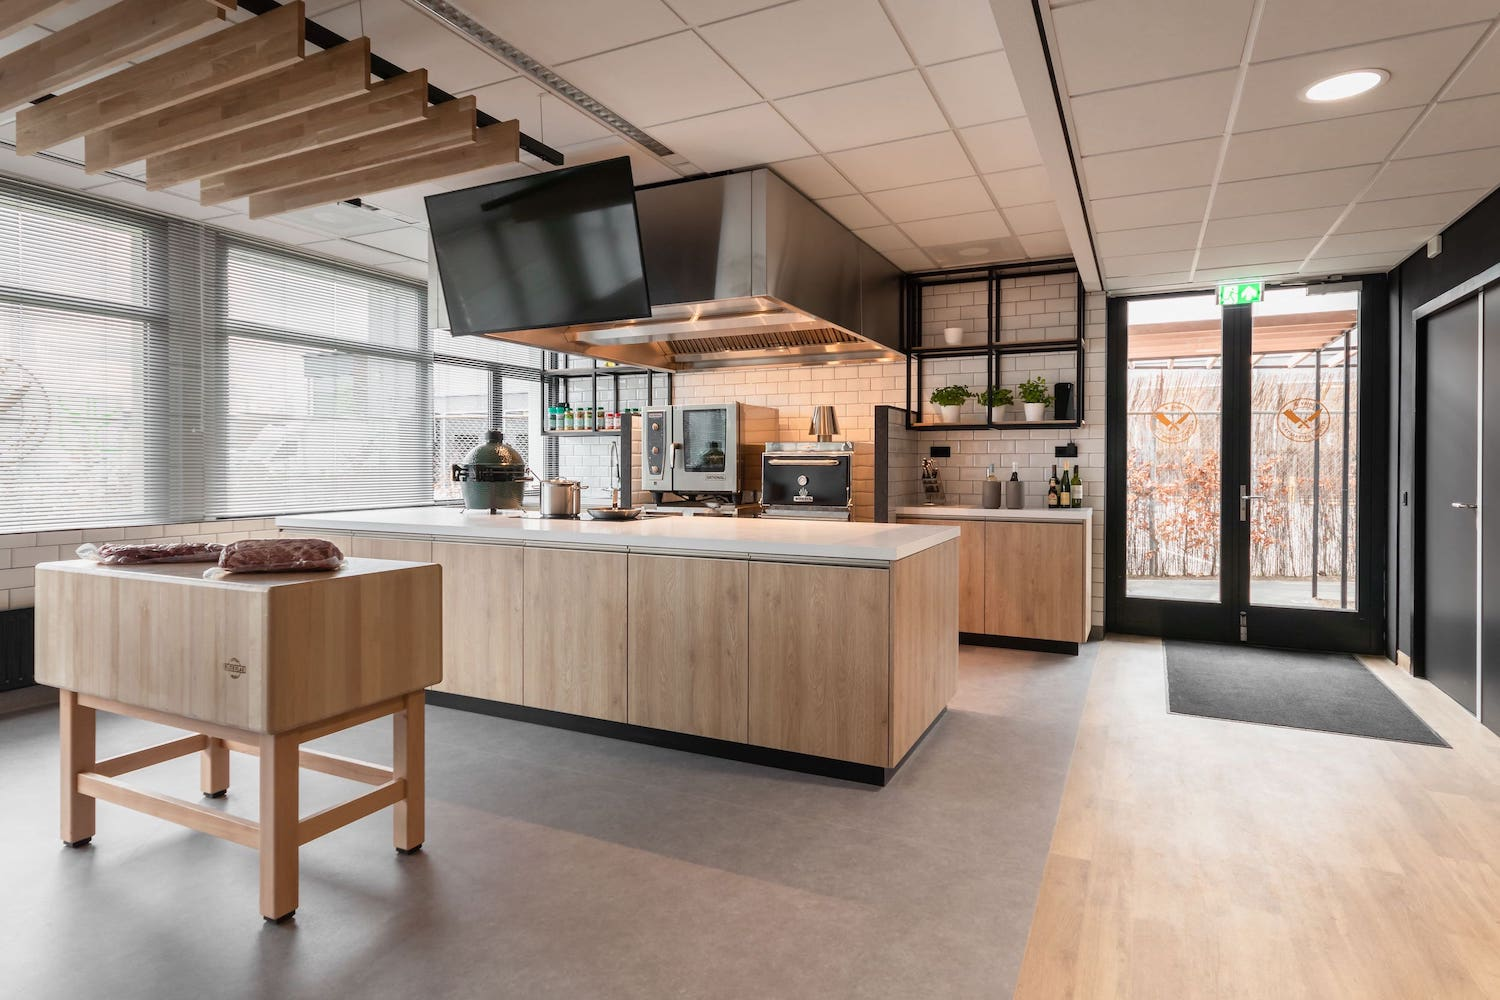 Experience center VION Food Group